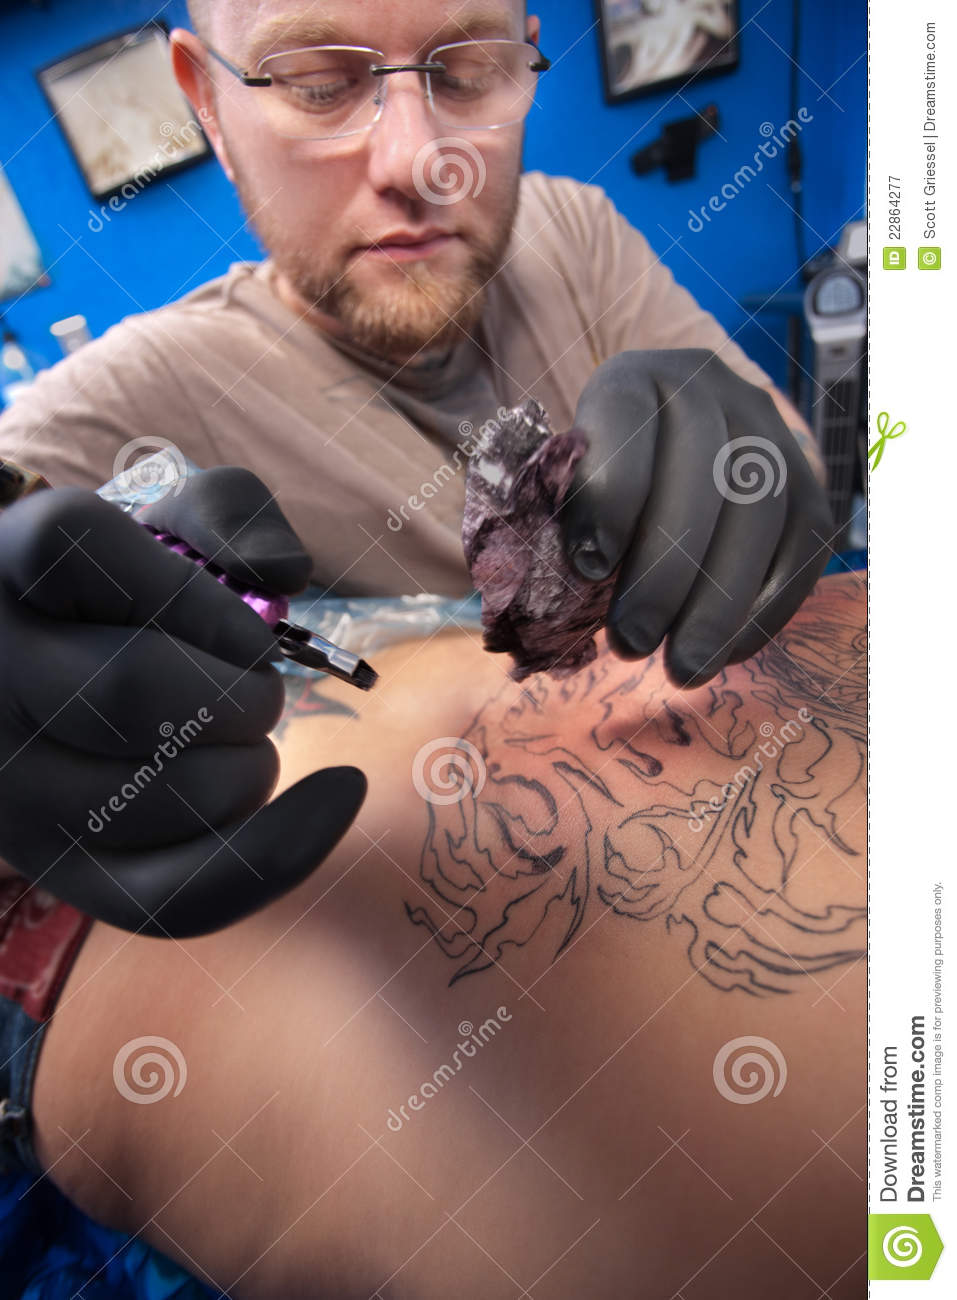 Tattoo Artist At Work Royalty Free Stock Photography ...